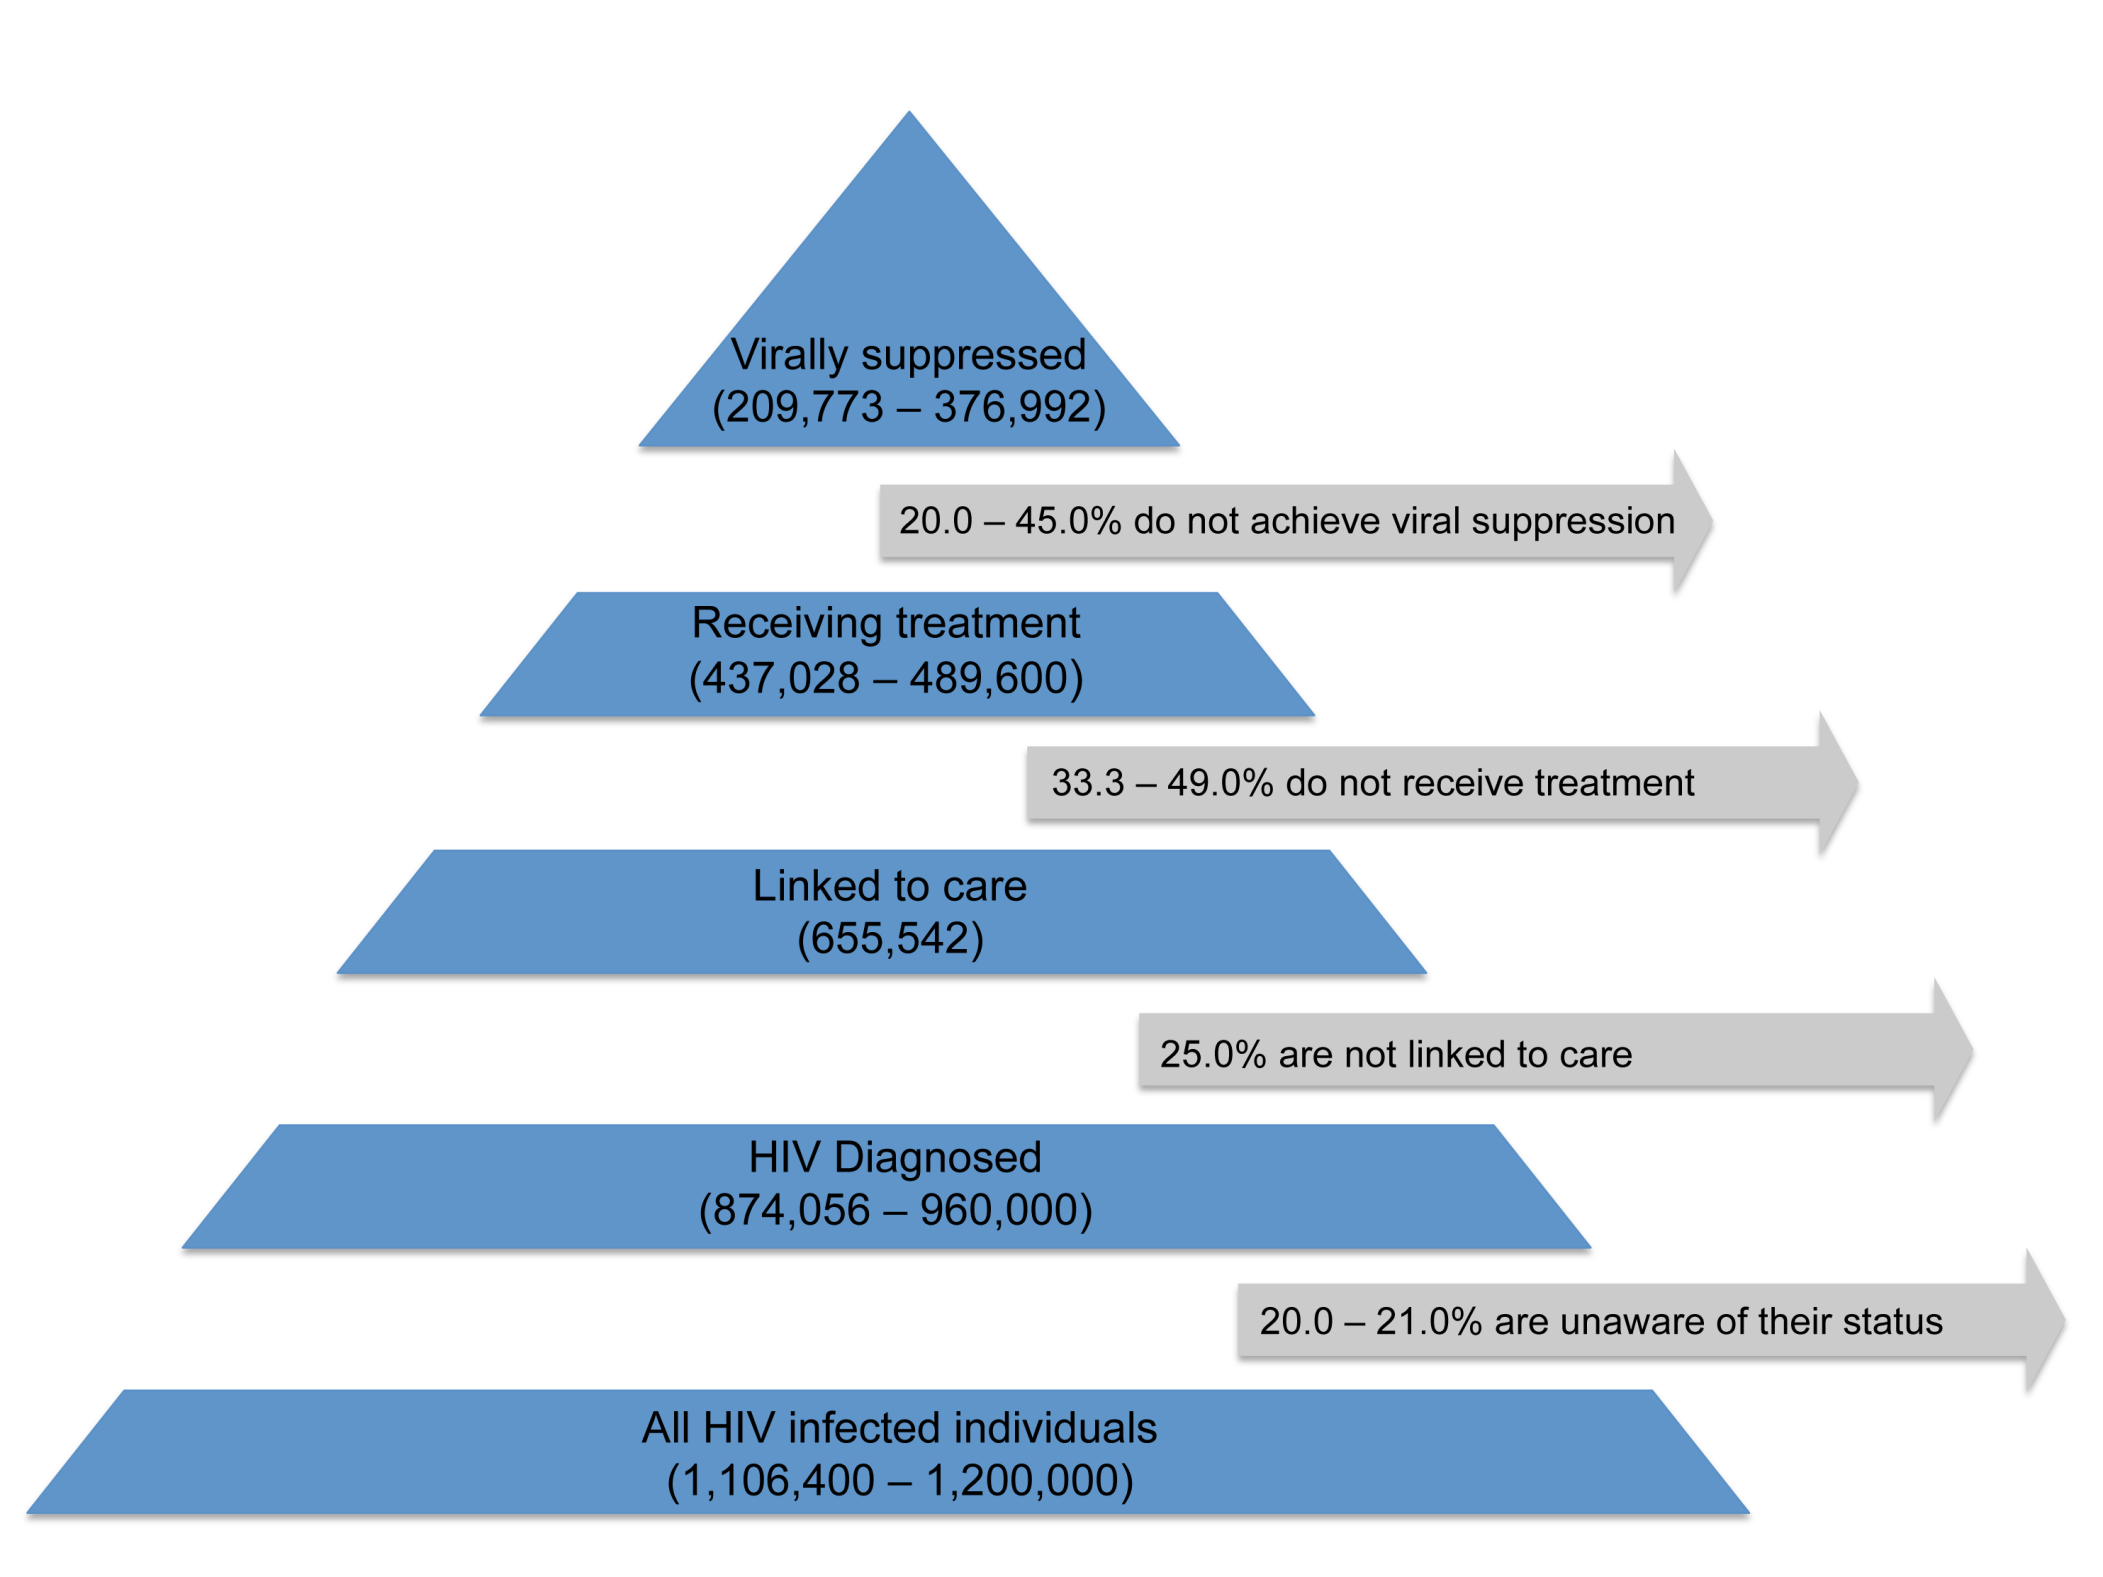 Estimated numbers of HIV-infected individuals in the US retained (and corresponding percentages lost) at various stages of the test, link, and treat cascade.